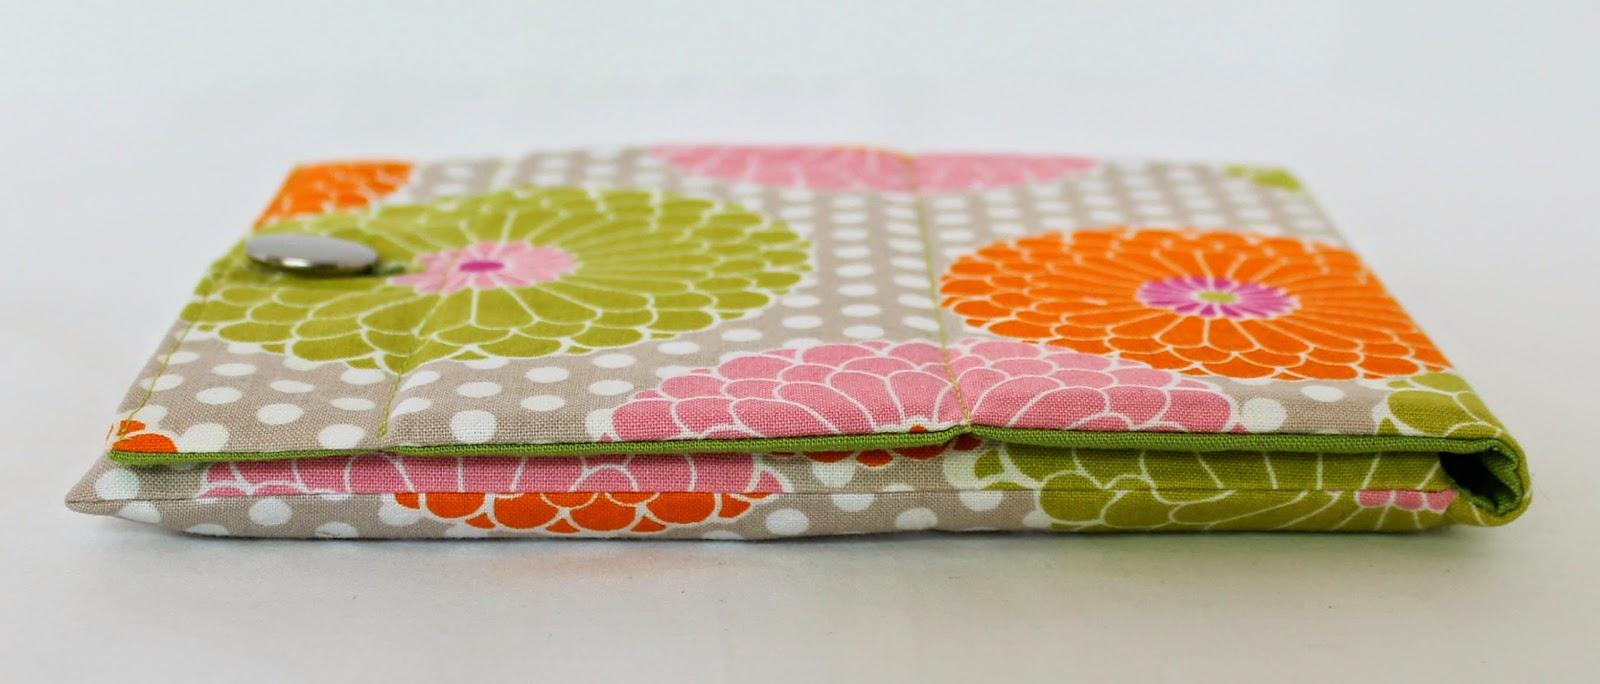 Prop-Up Tablet Case | Step-by-step directions how to sew an envelope case, custom fit to cover ANY size tablet with a prop-up stand built right into the flap. | The Inspired Wren